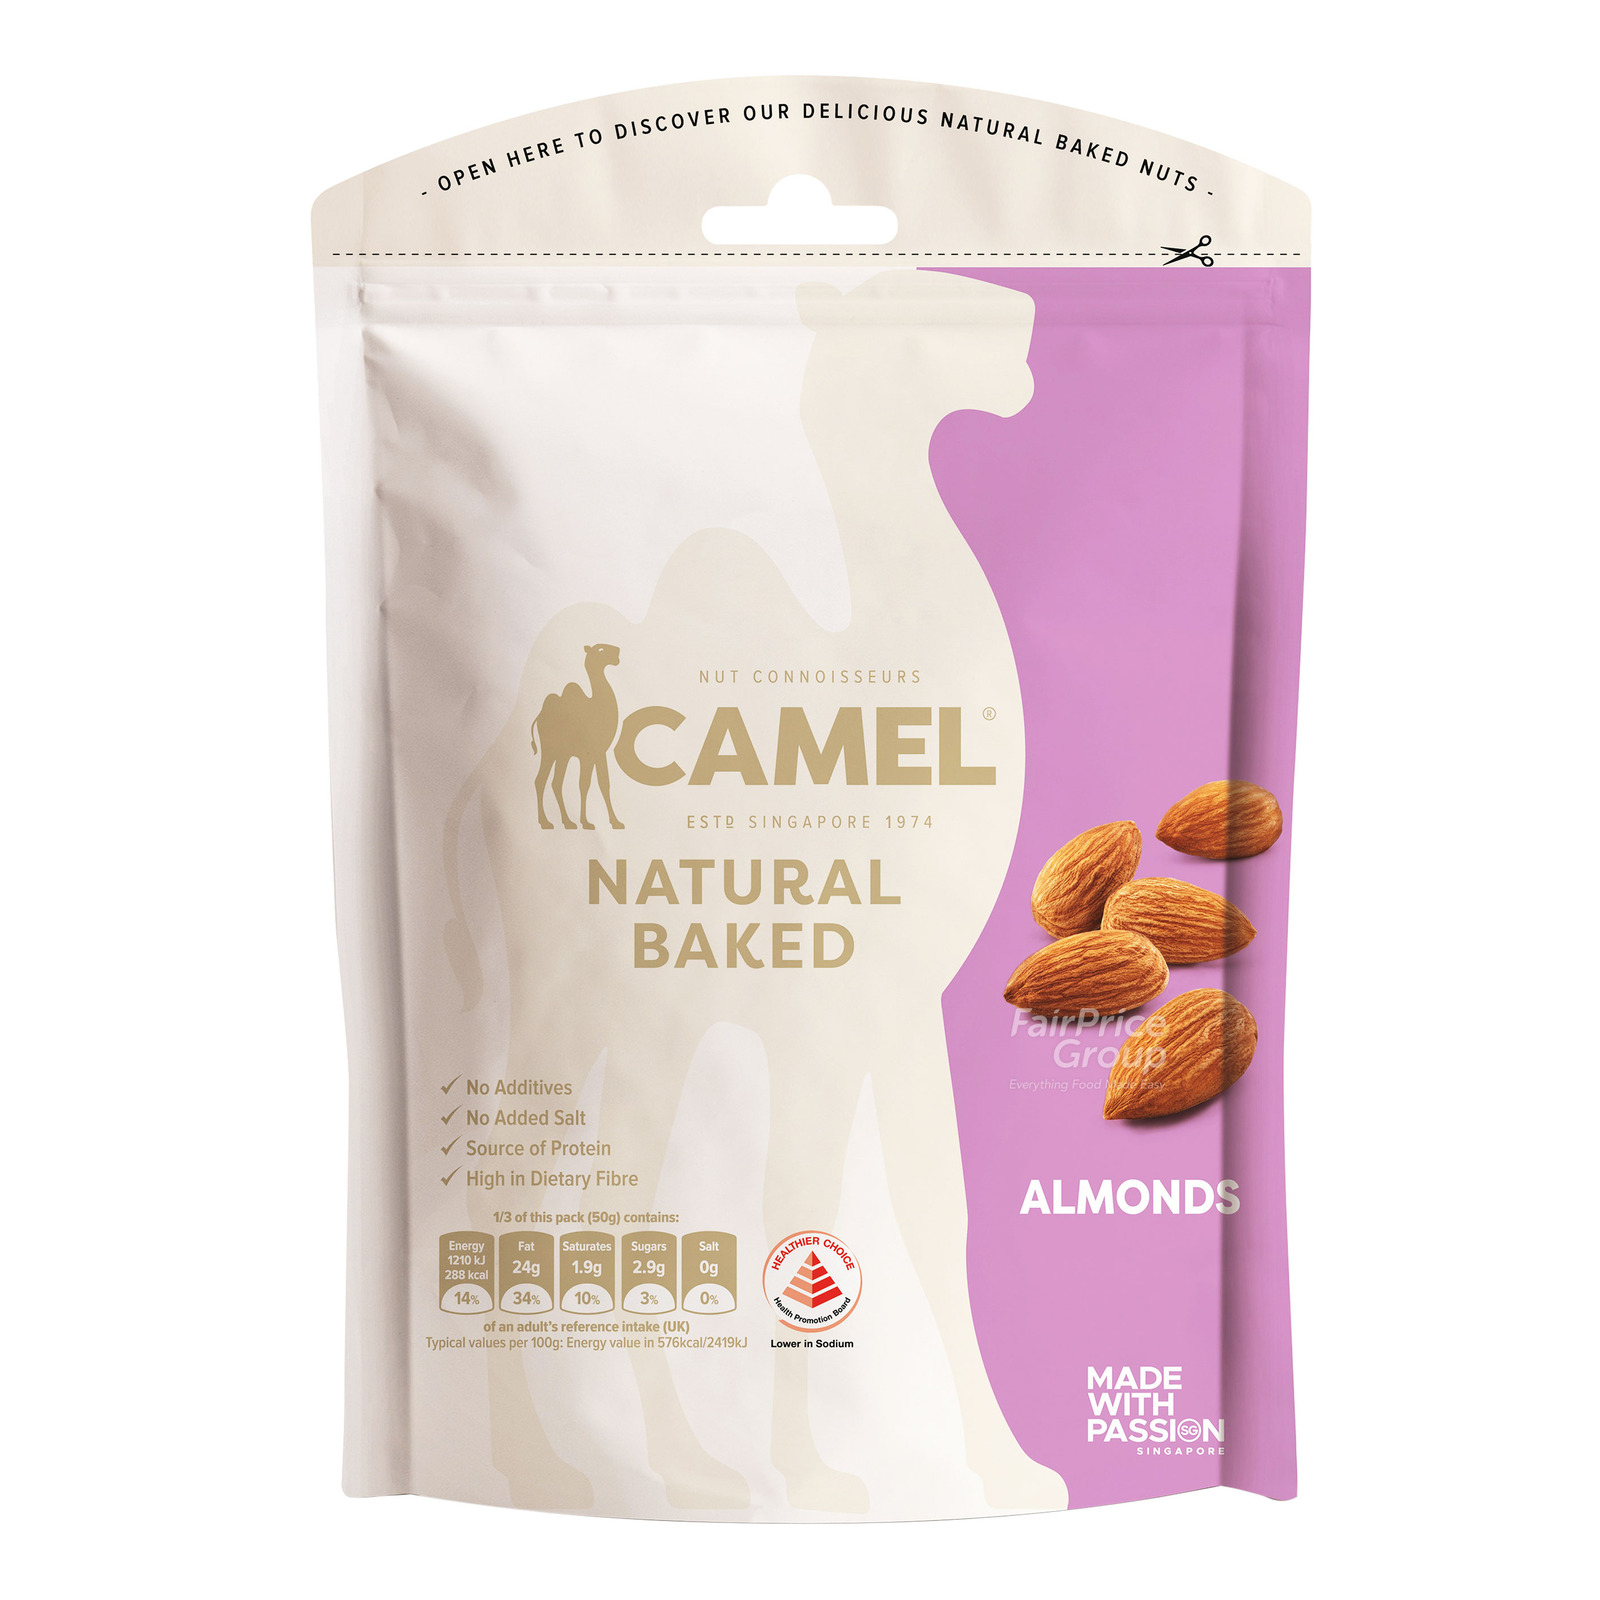 Camel Natural Baked Almonds